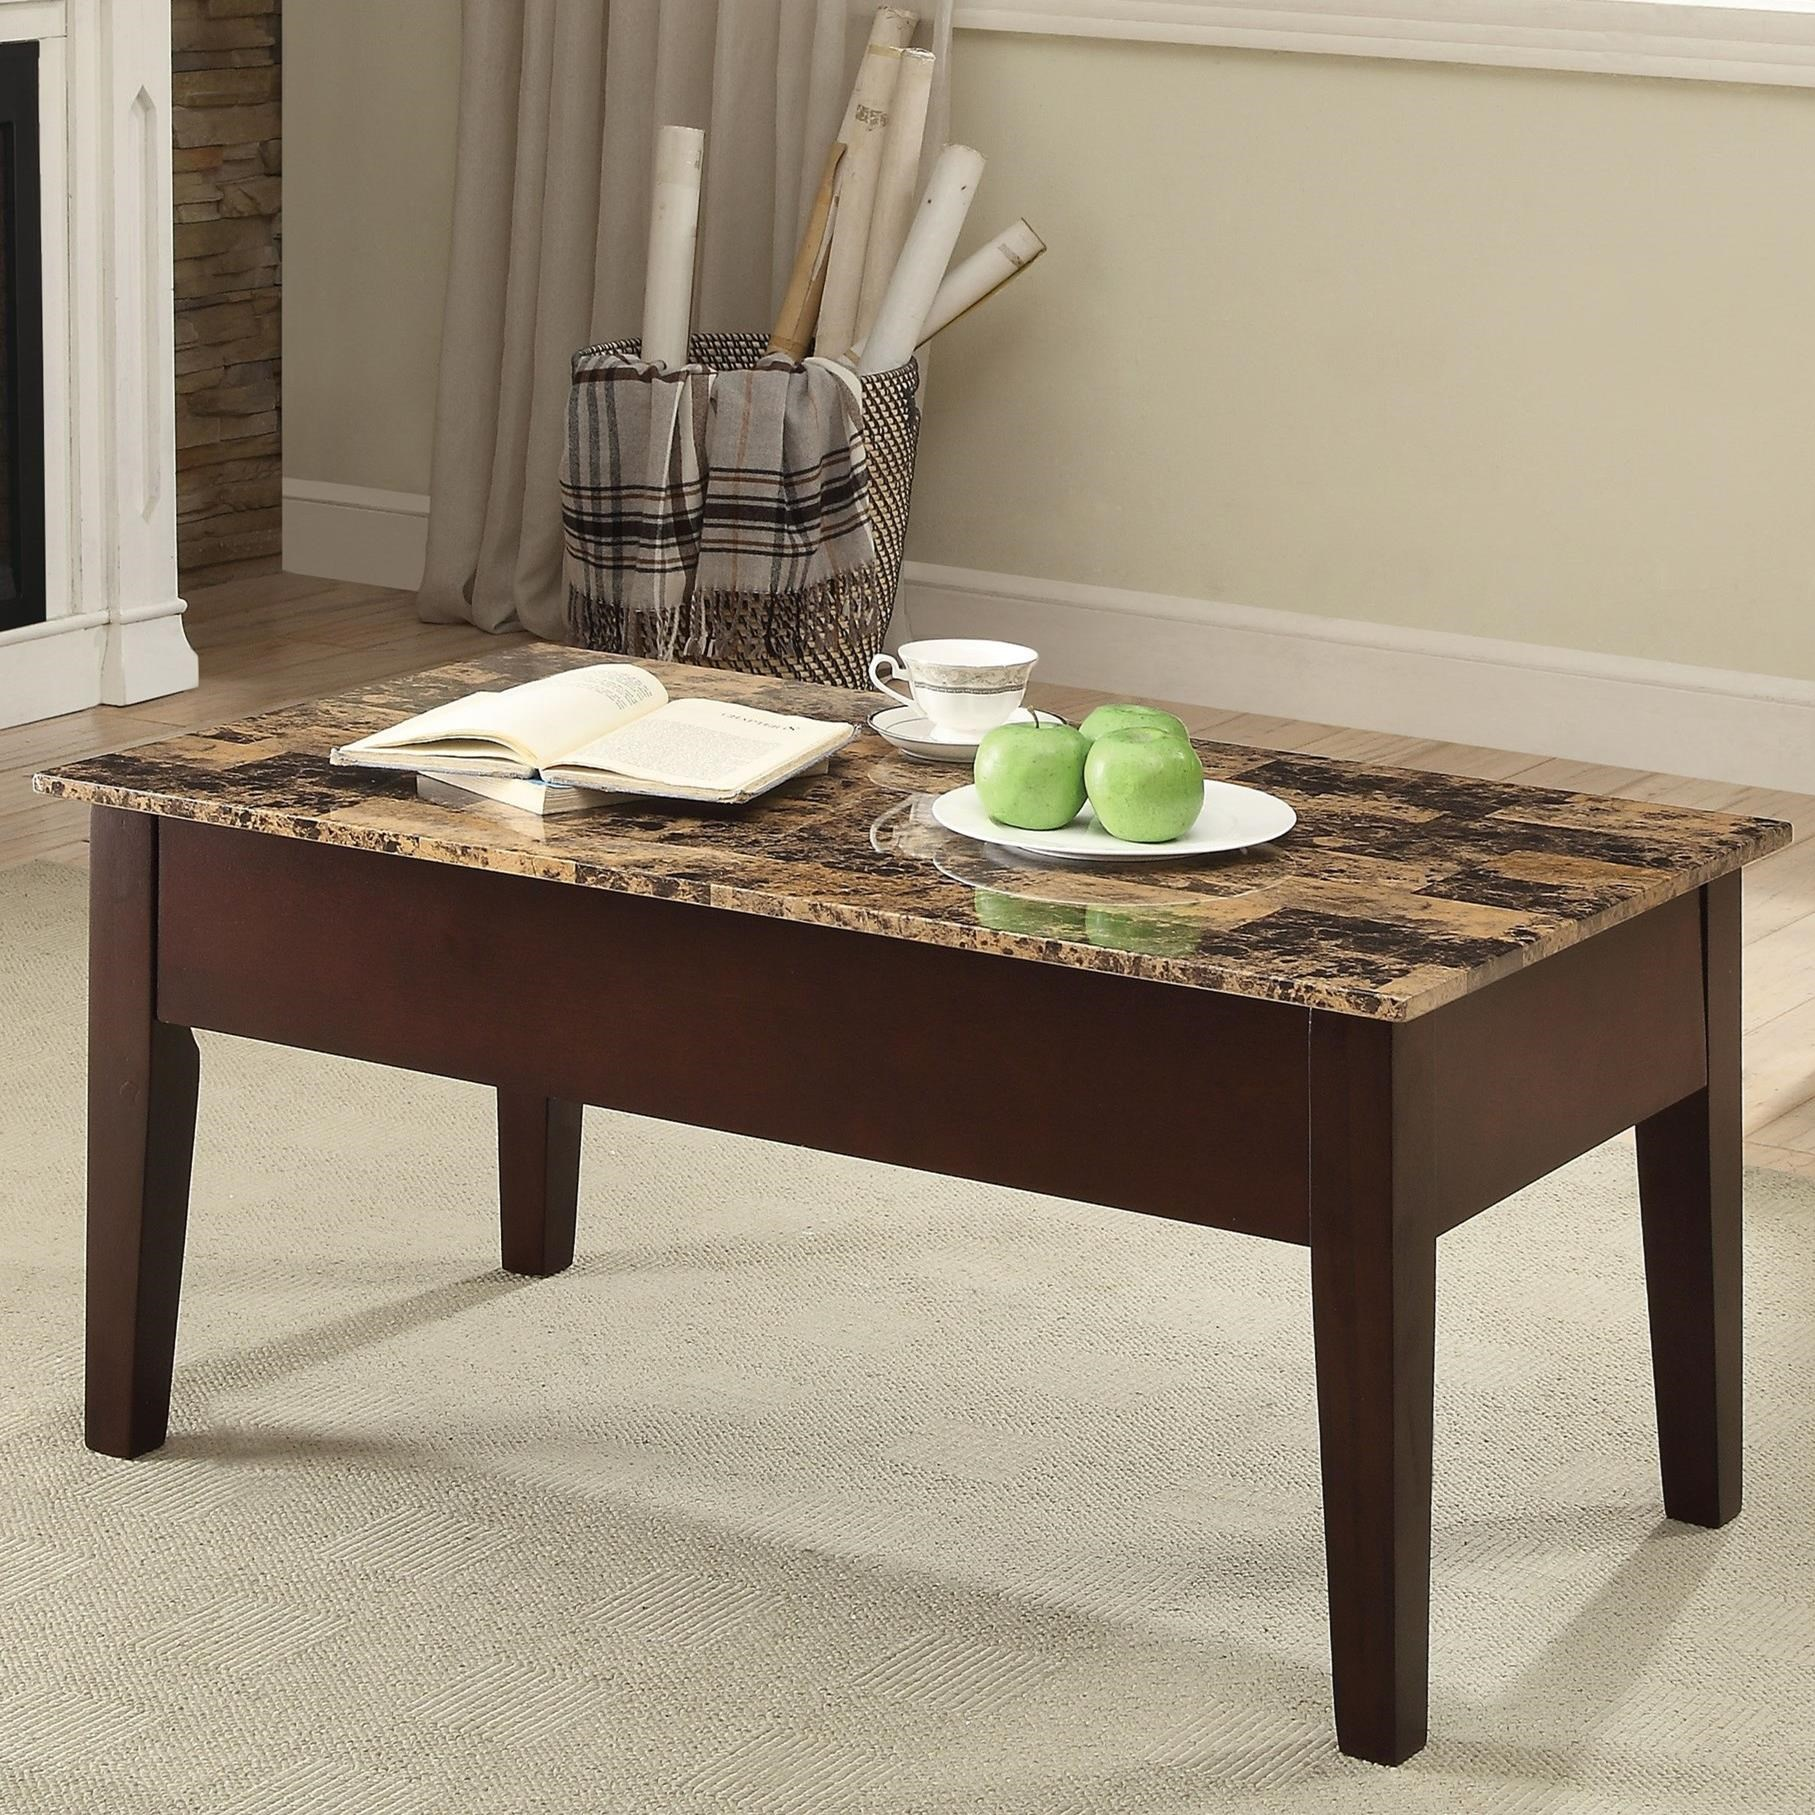 Dusty II Coffee Table by Acme Furniture at A1 Furniture & Mattress